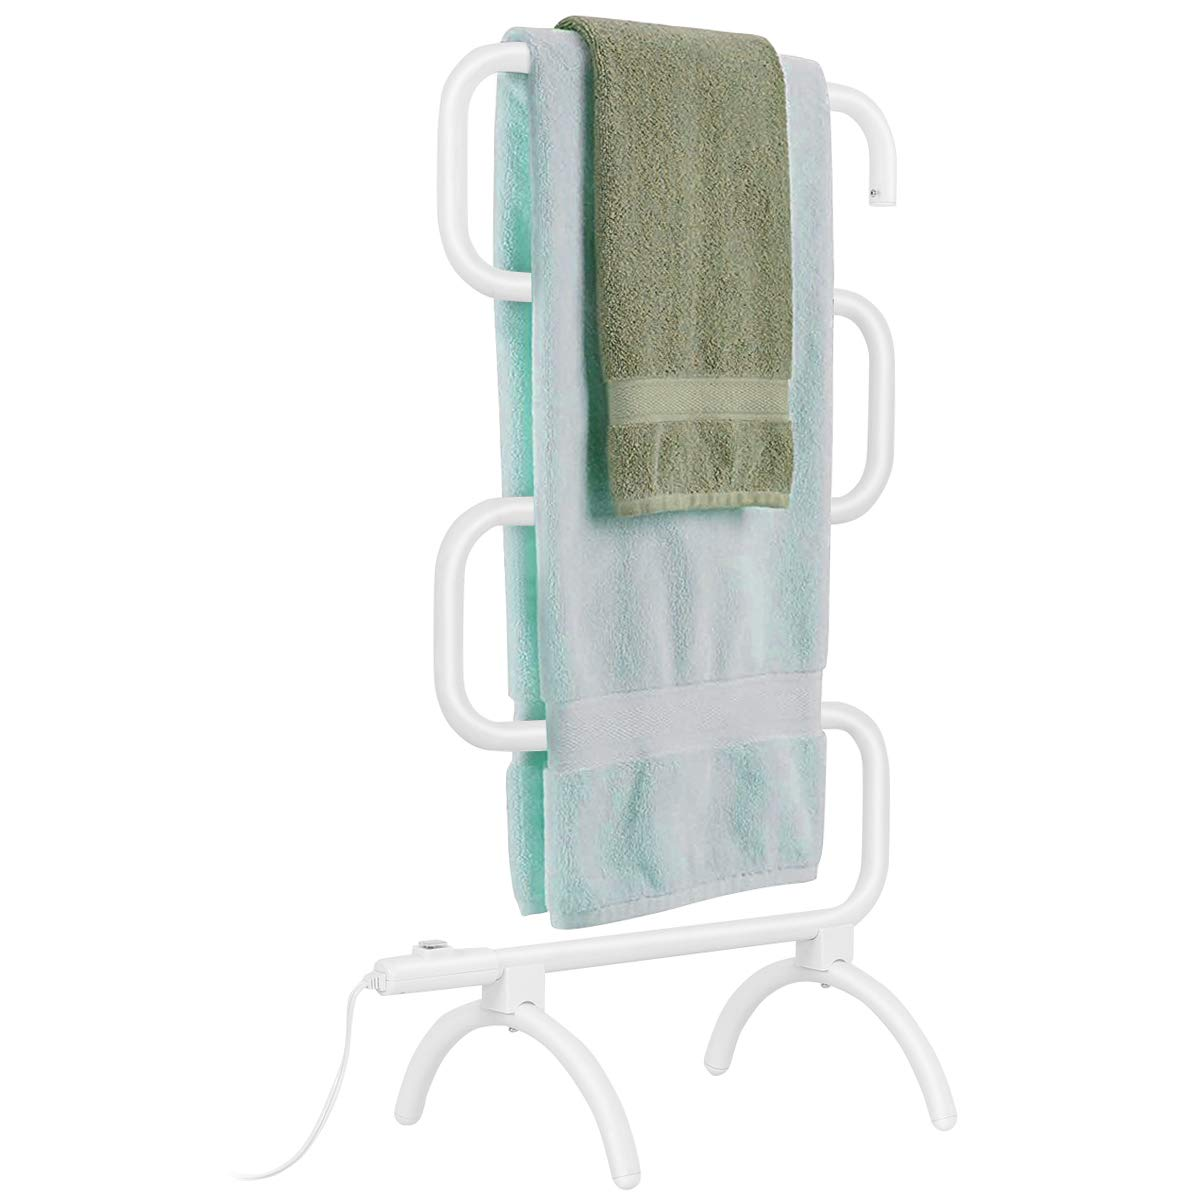 Tangkula Towel Warmer, Home Bathroom 100W Electric 5-Bar Towel Drying Rack, Freestanding and Wall Mounted Design Towel Hanger, Towel Heater, White (23'' L x 13'' W x 36'' H)